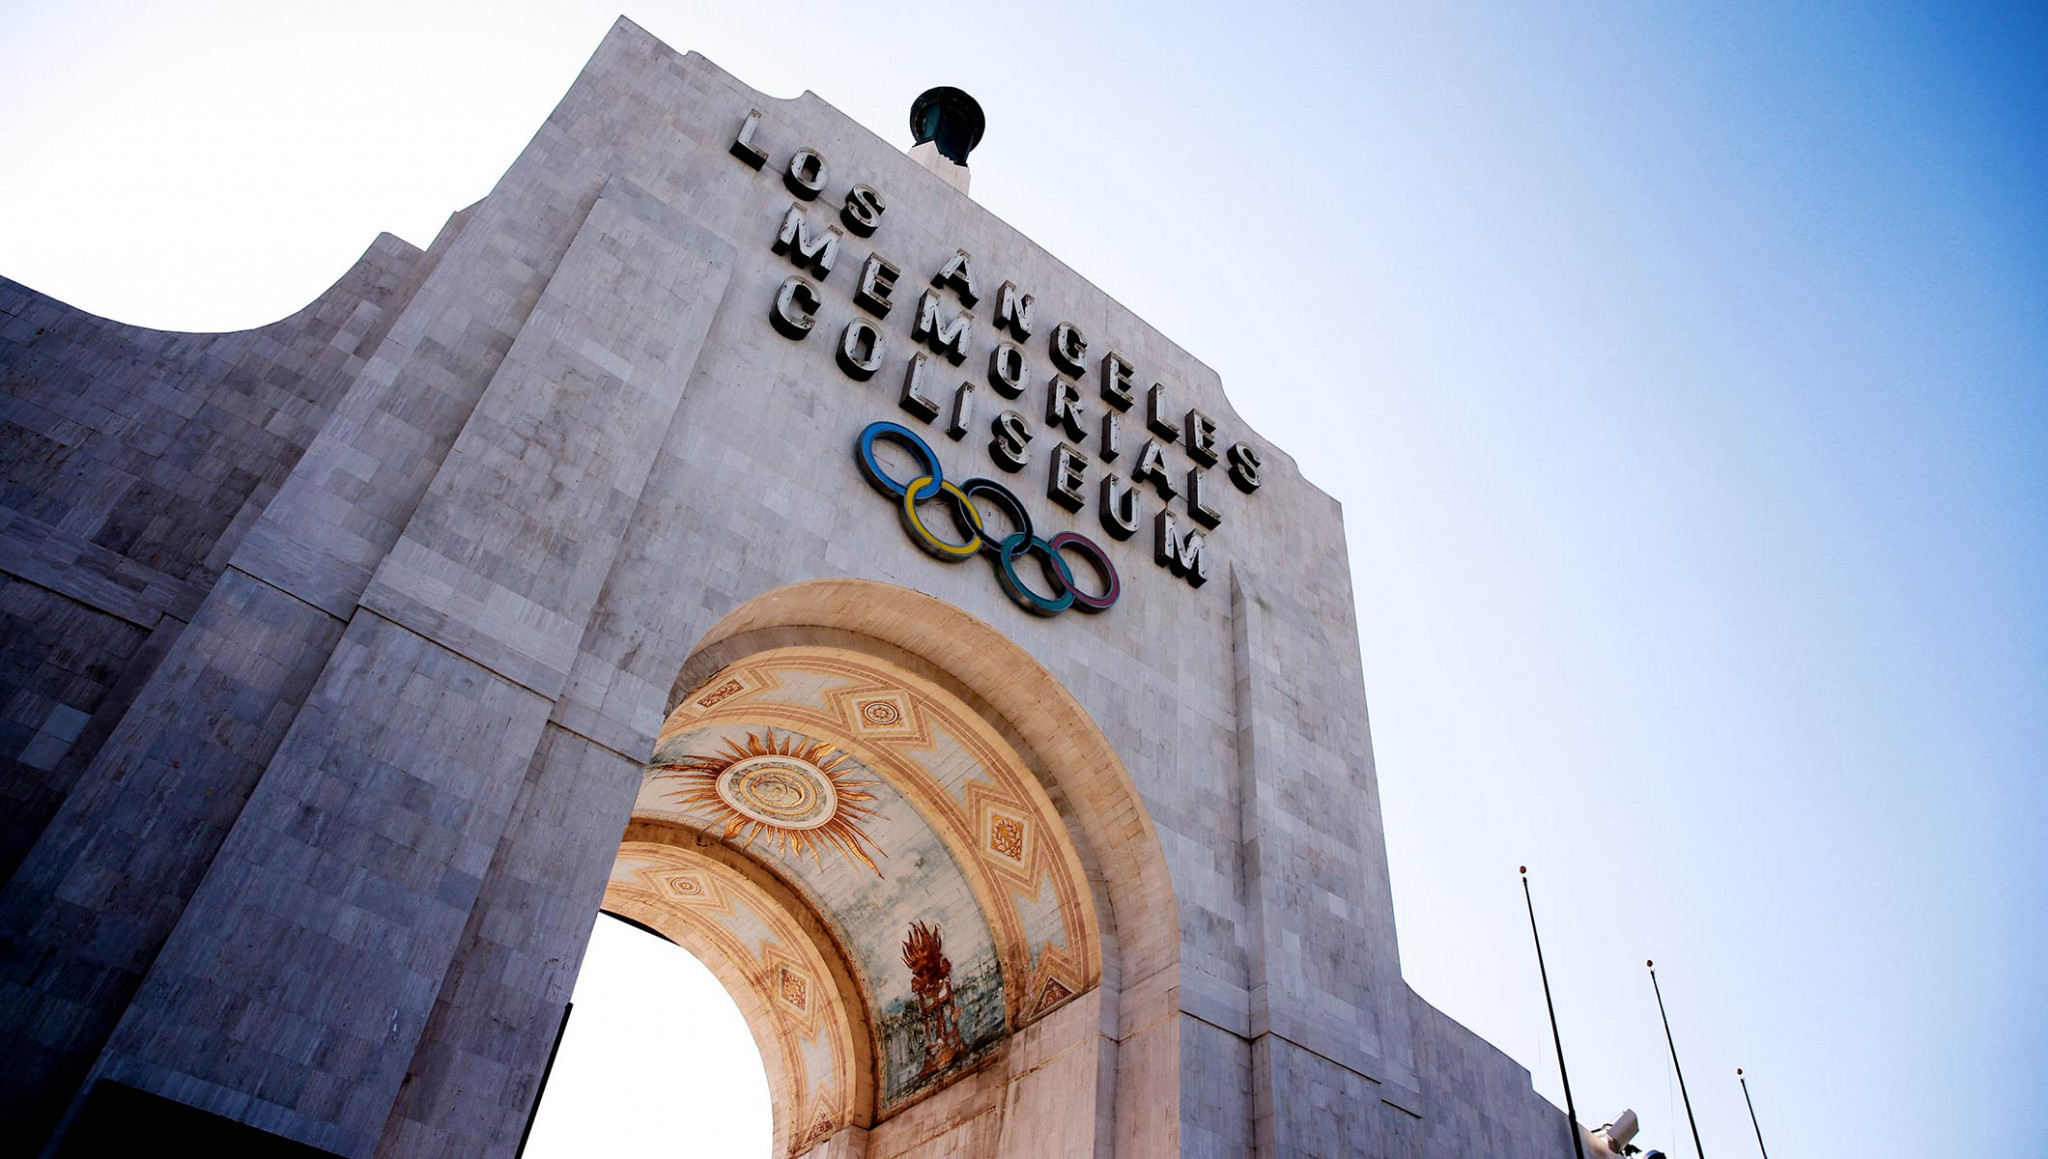 The Los Angeles Memorial Coliseum was among the venues visited by the delegation ©IOC